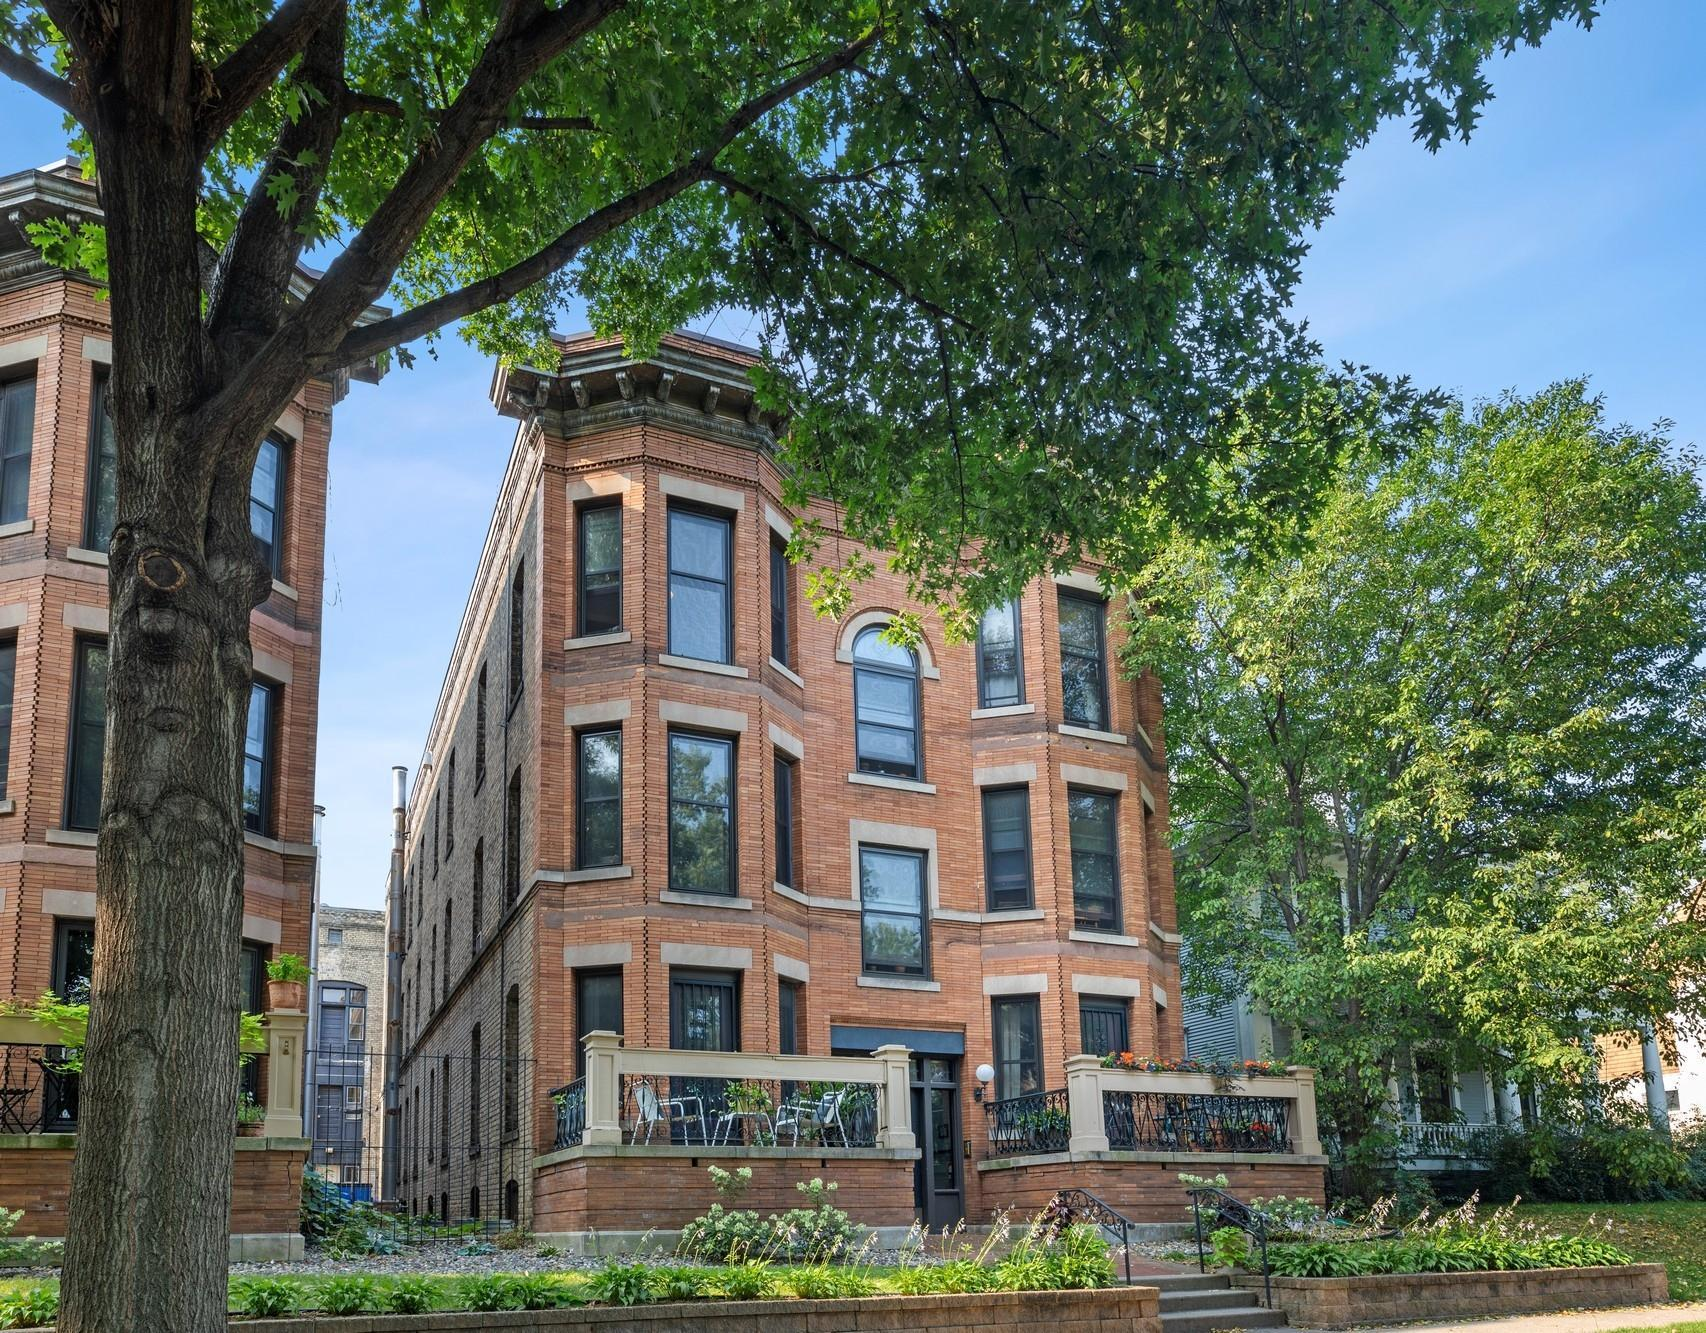 Apt Own No53 Woodland Park Con Real Estate Listings Main Image